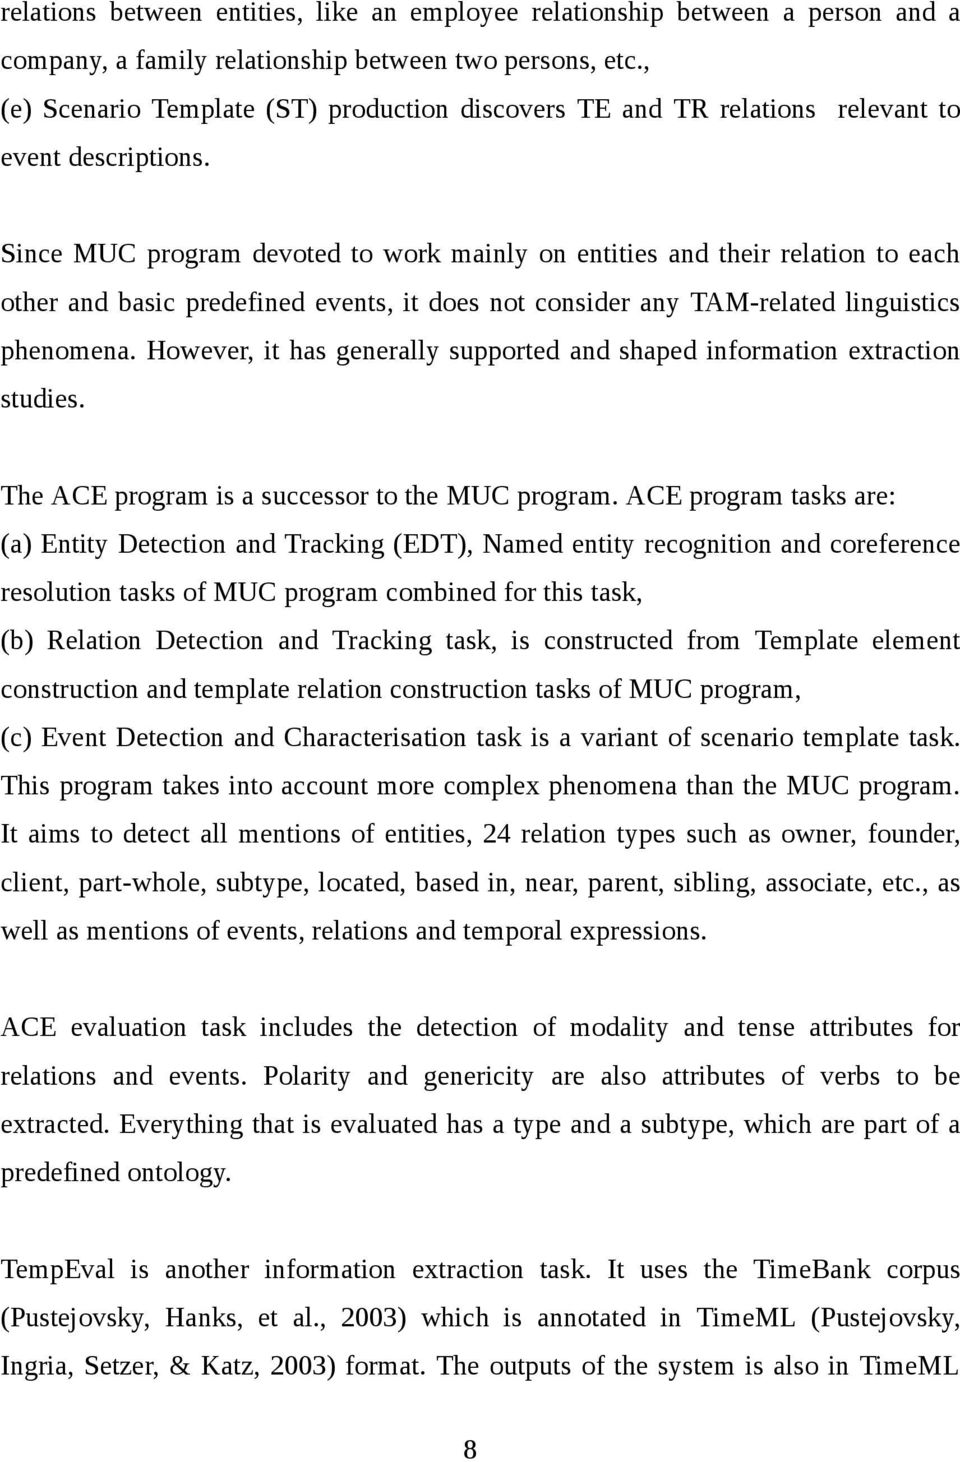 Since MUC program devoted to work mainly on entities and their relation to each other and basic predefined events, it does not consider any TAM-related linguistics phenomena.